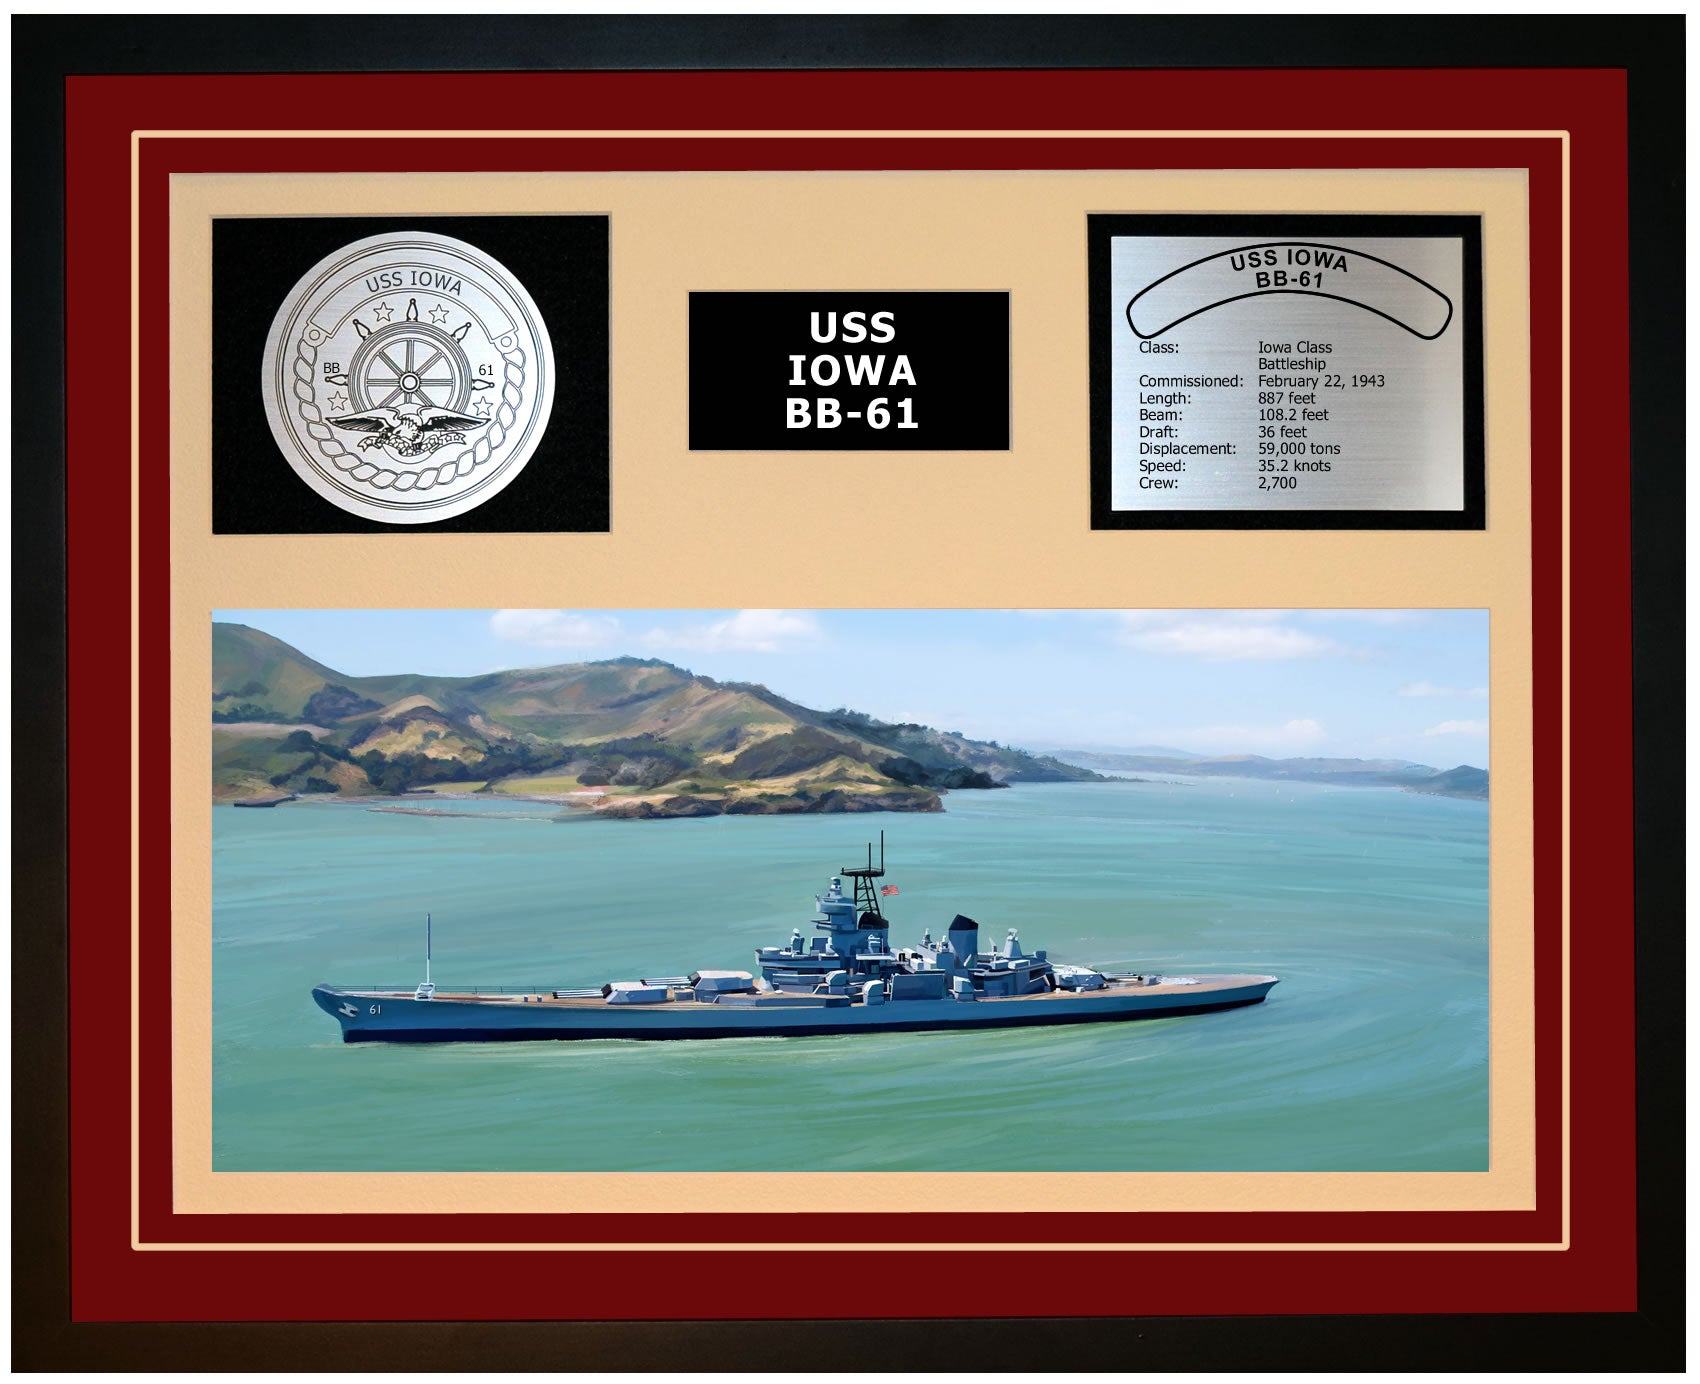 USS IOWA BB-61 Framed Navy Ship Display Burgundy